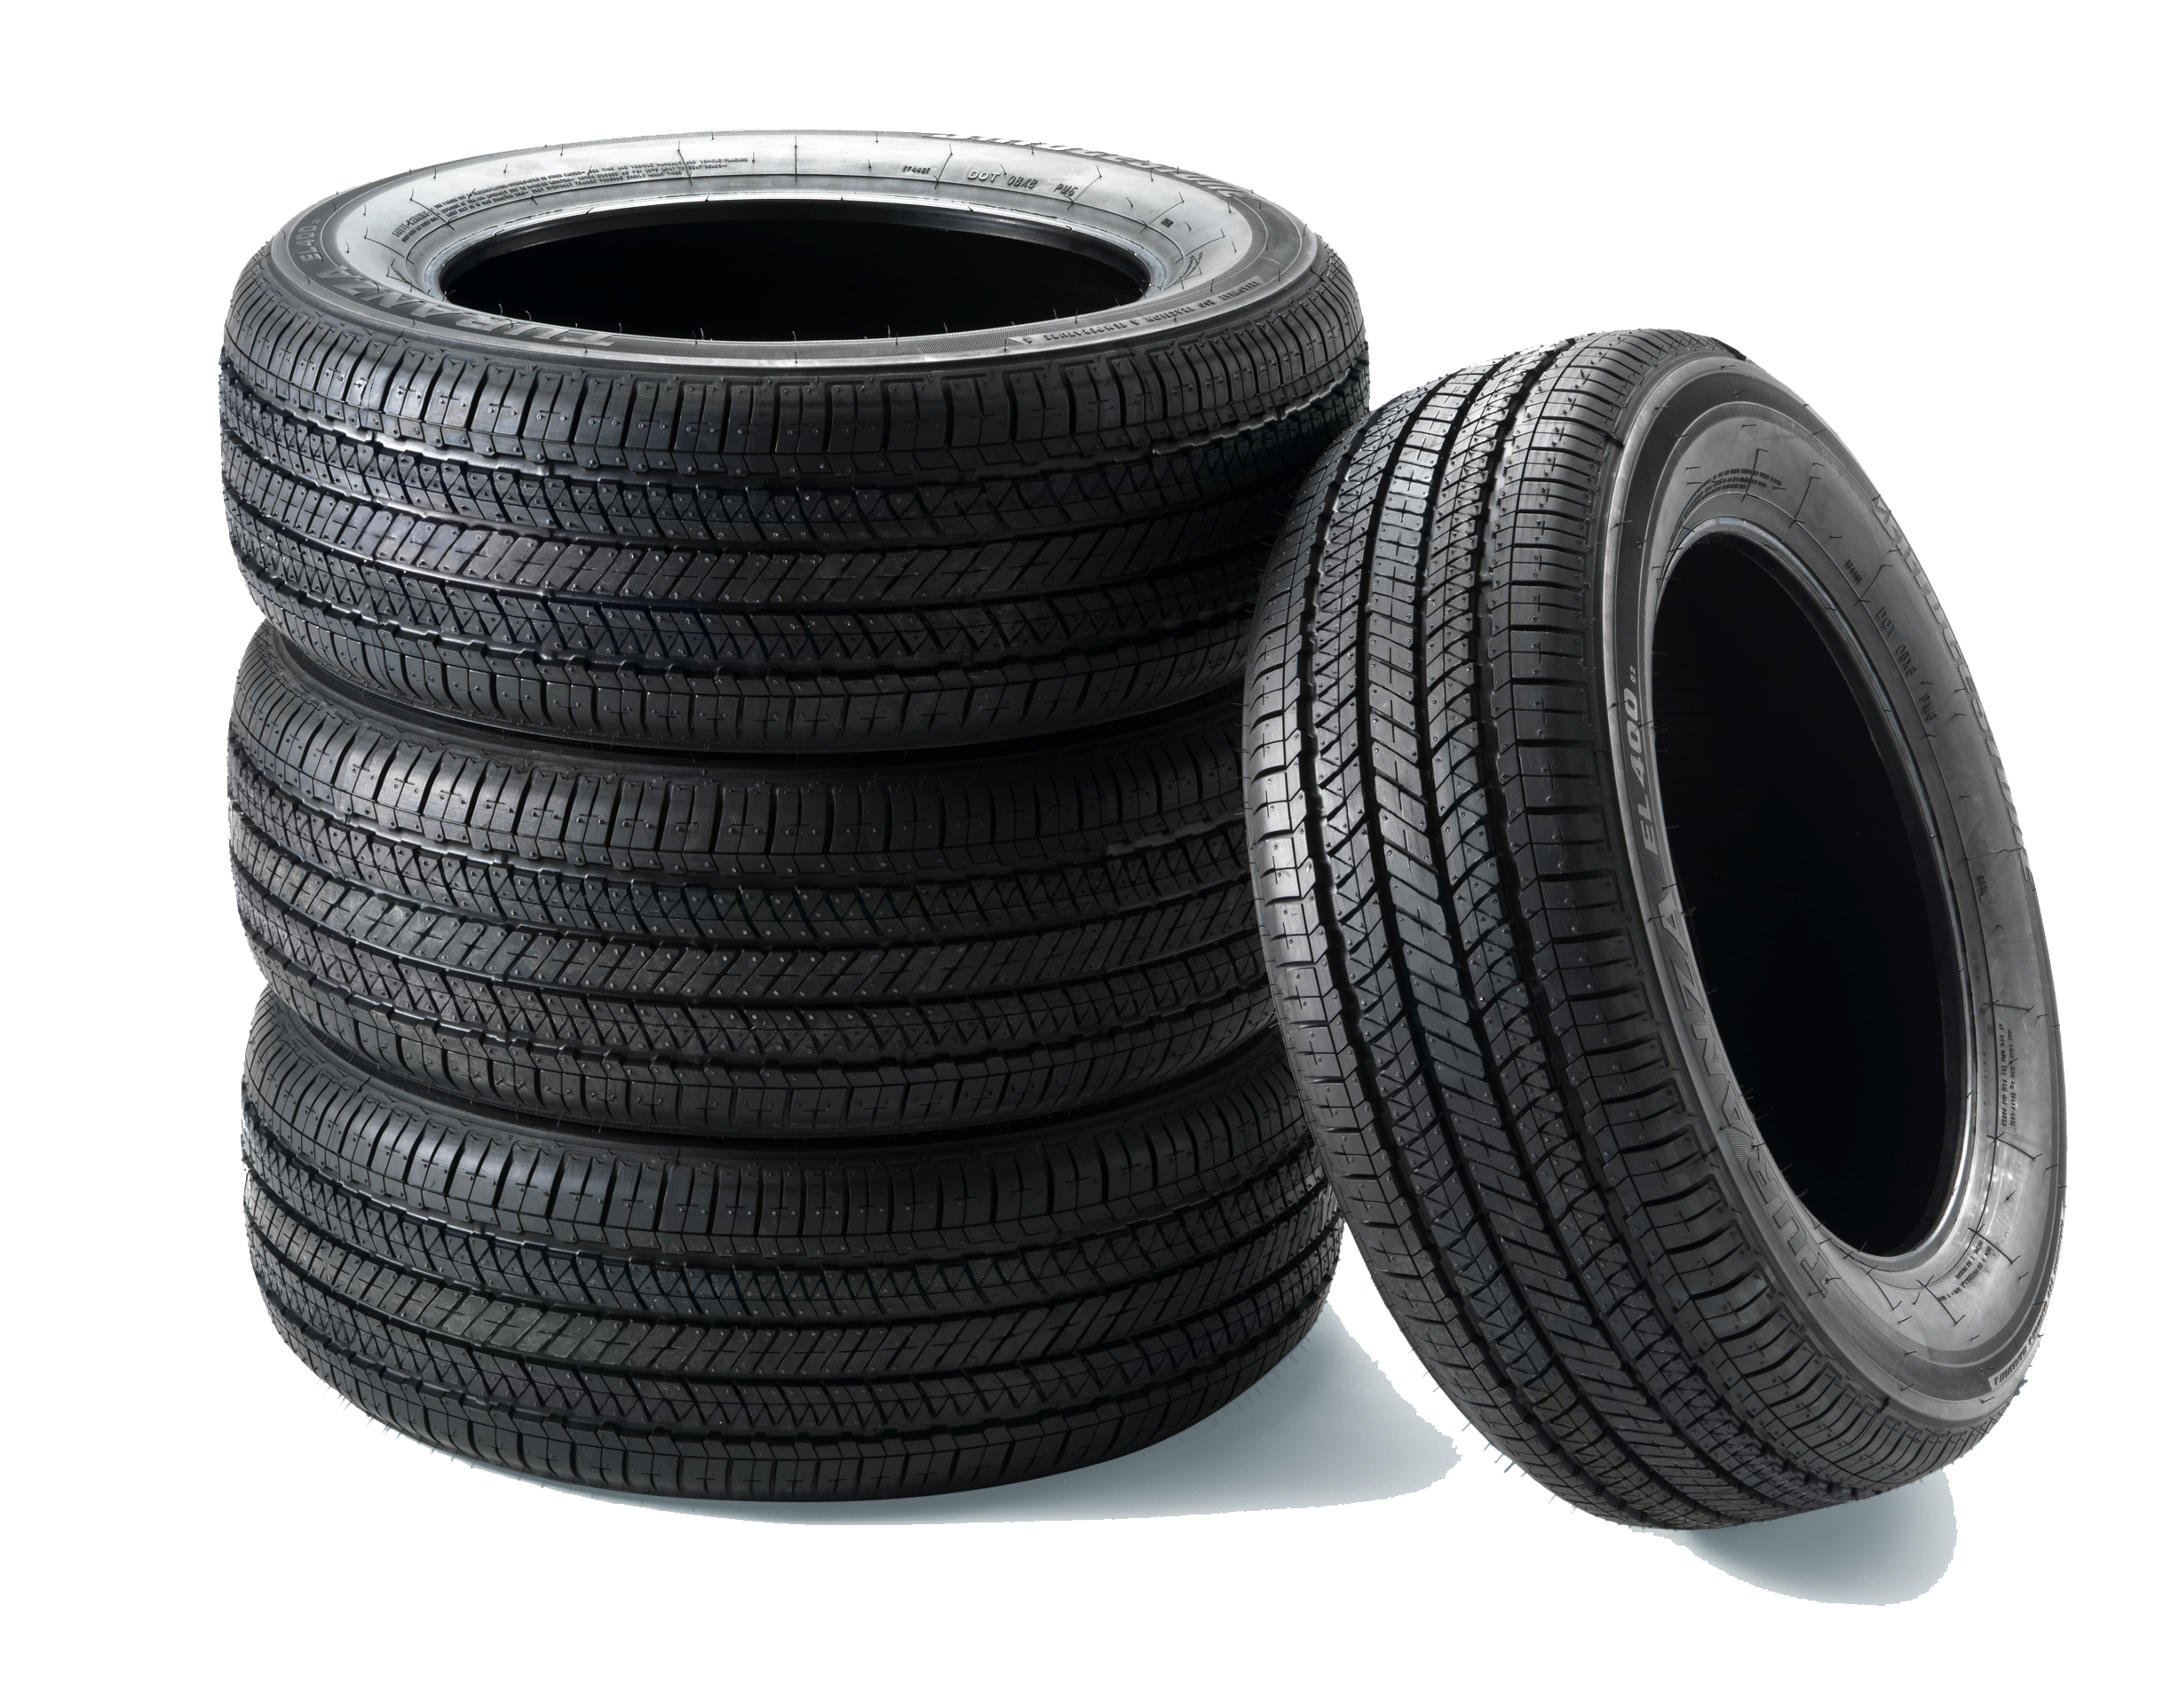 Tire png image. Images free download